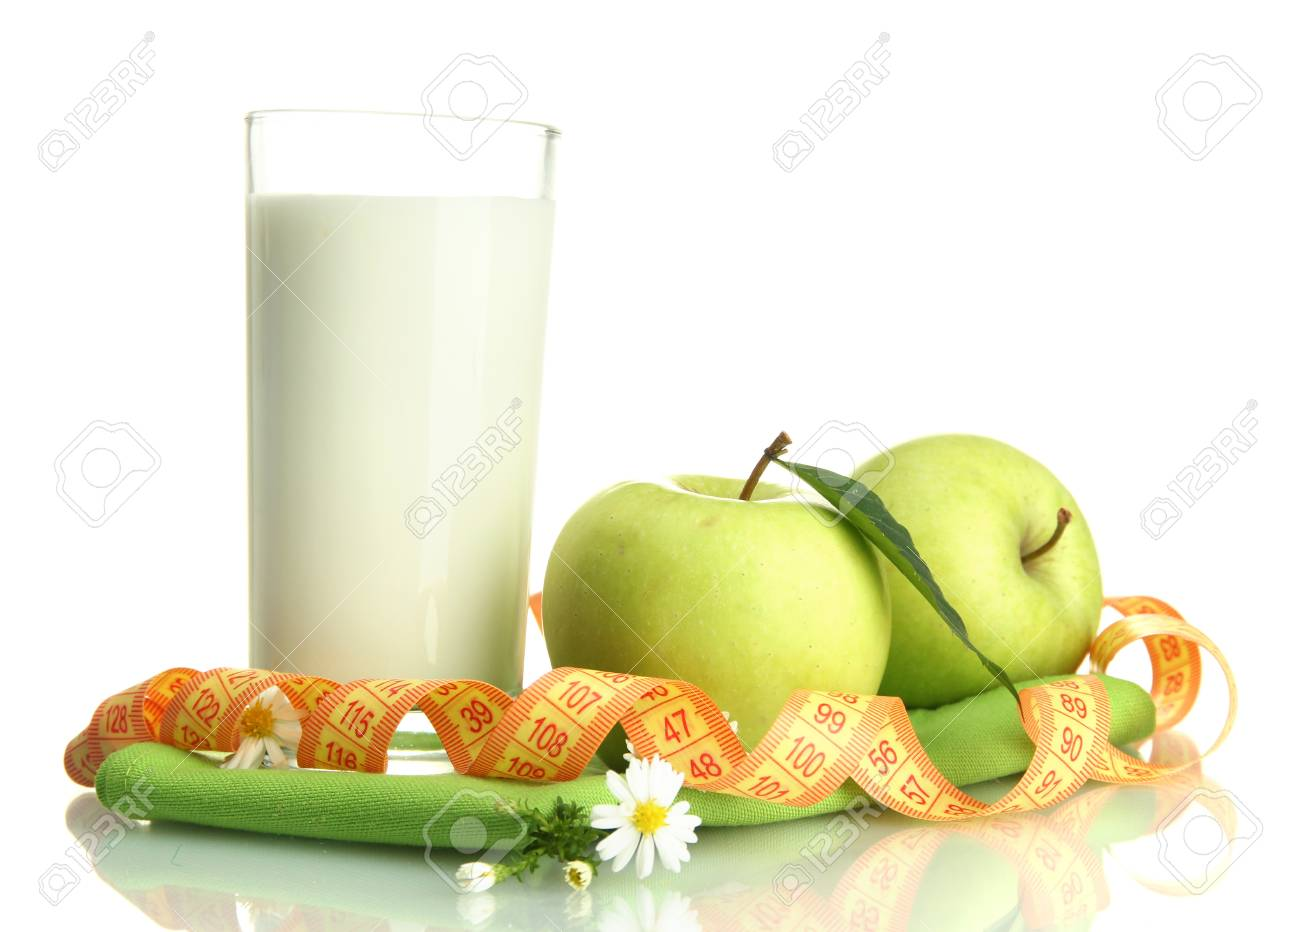 Glass of kefir, green apples and measuring tape isolated on white Stock Photo - 16412271